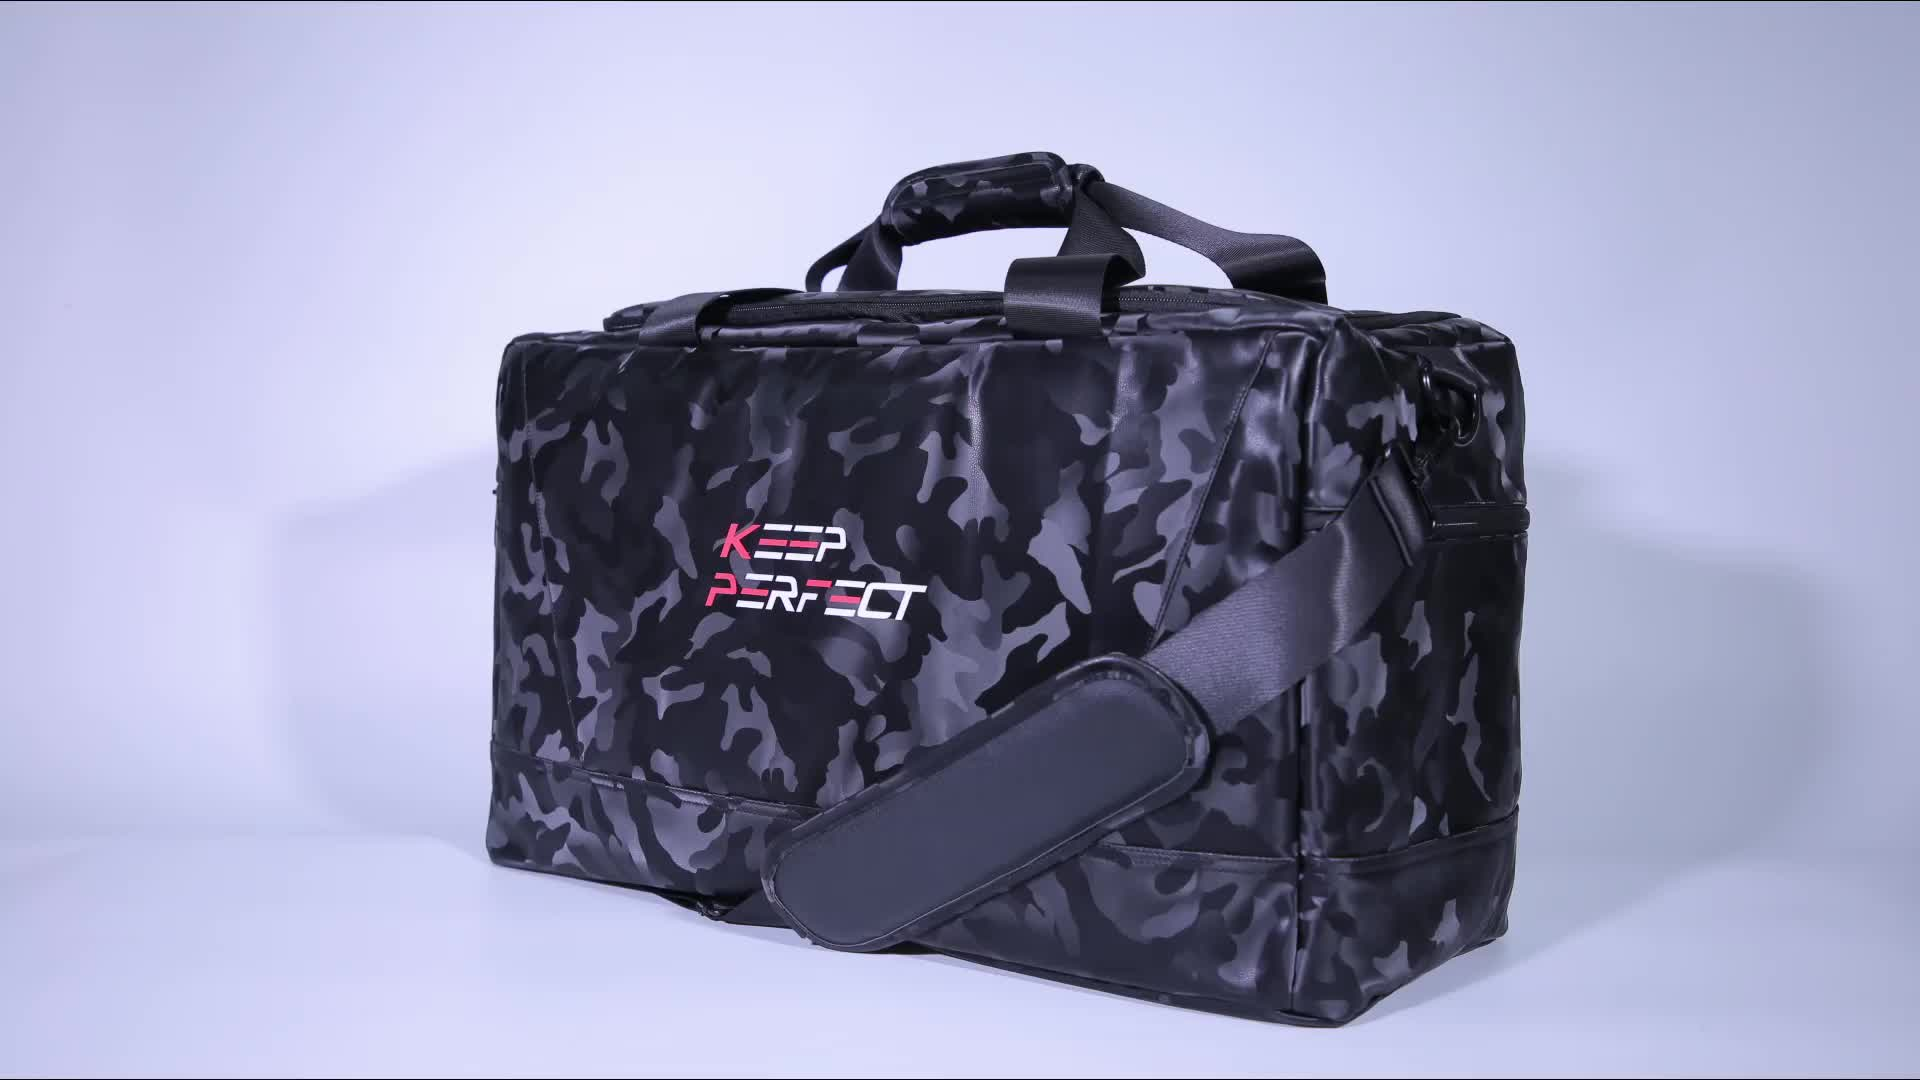 Outdoor Travel Bag Gym Bags with Sneaker Compartments Inner Laptop Compartment